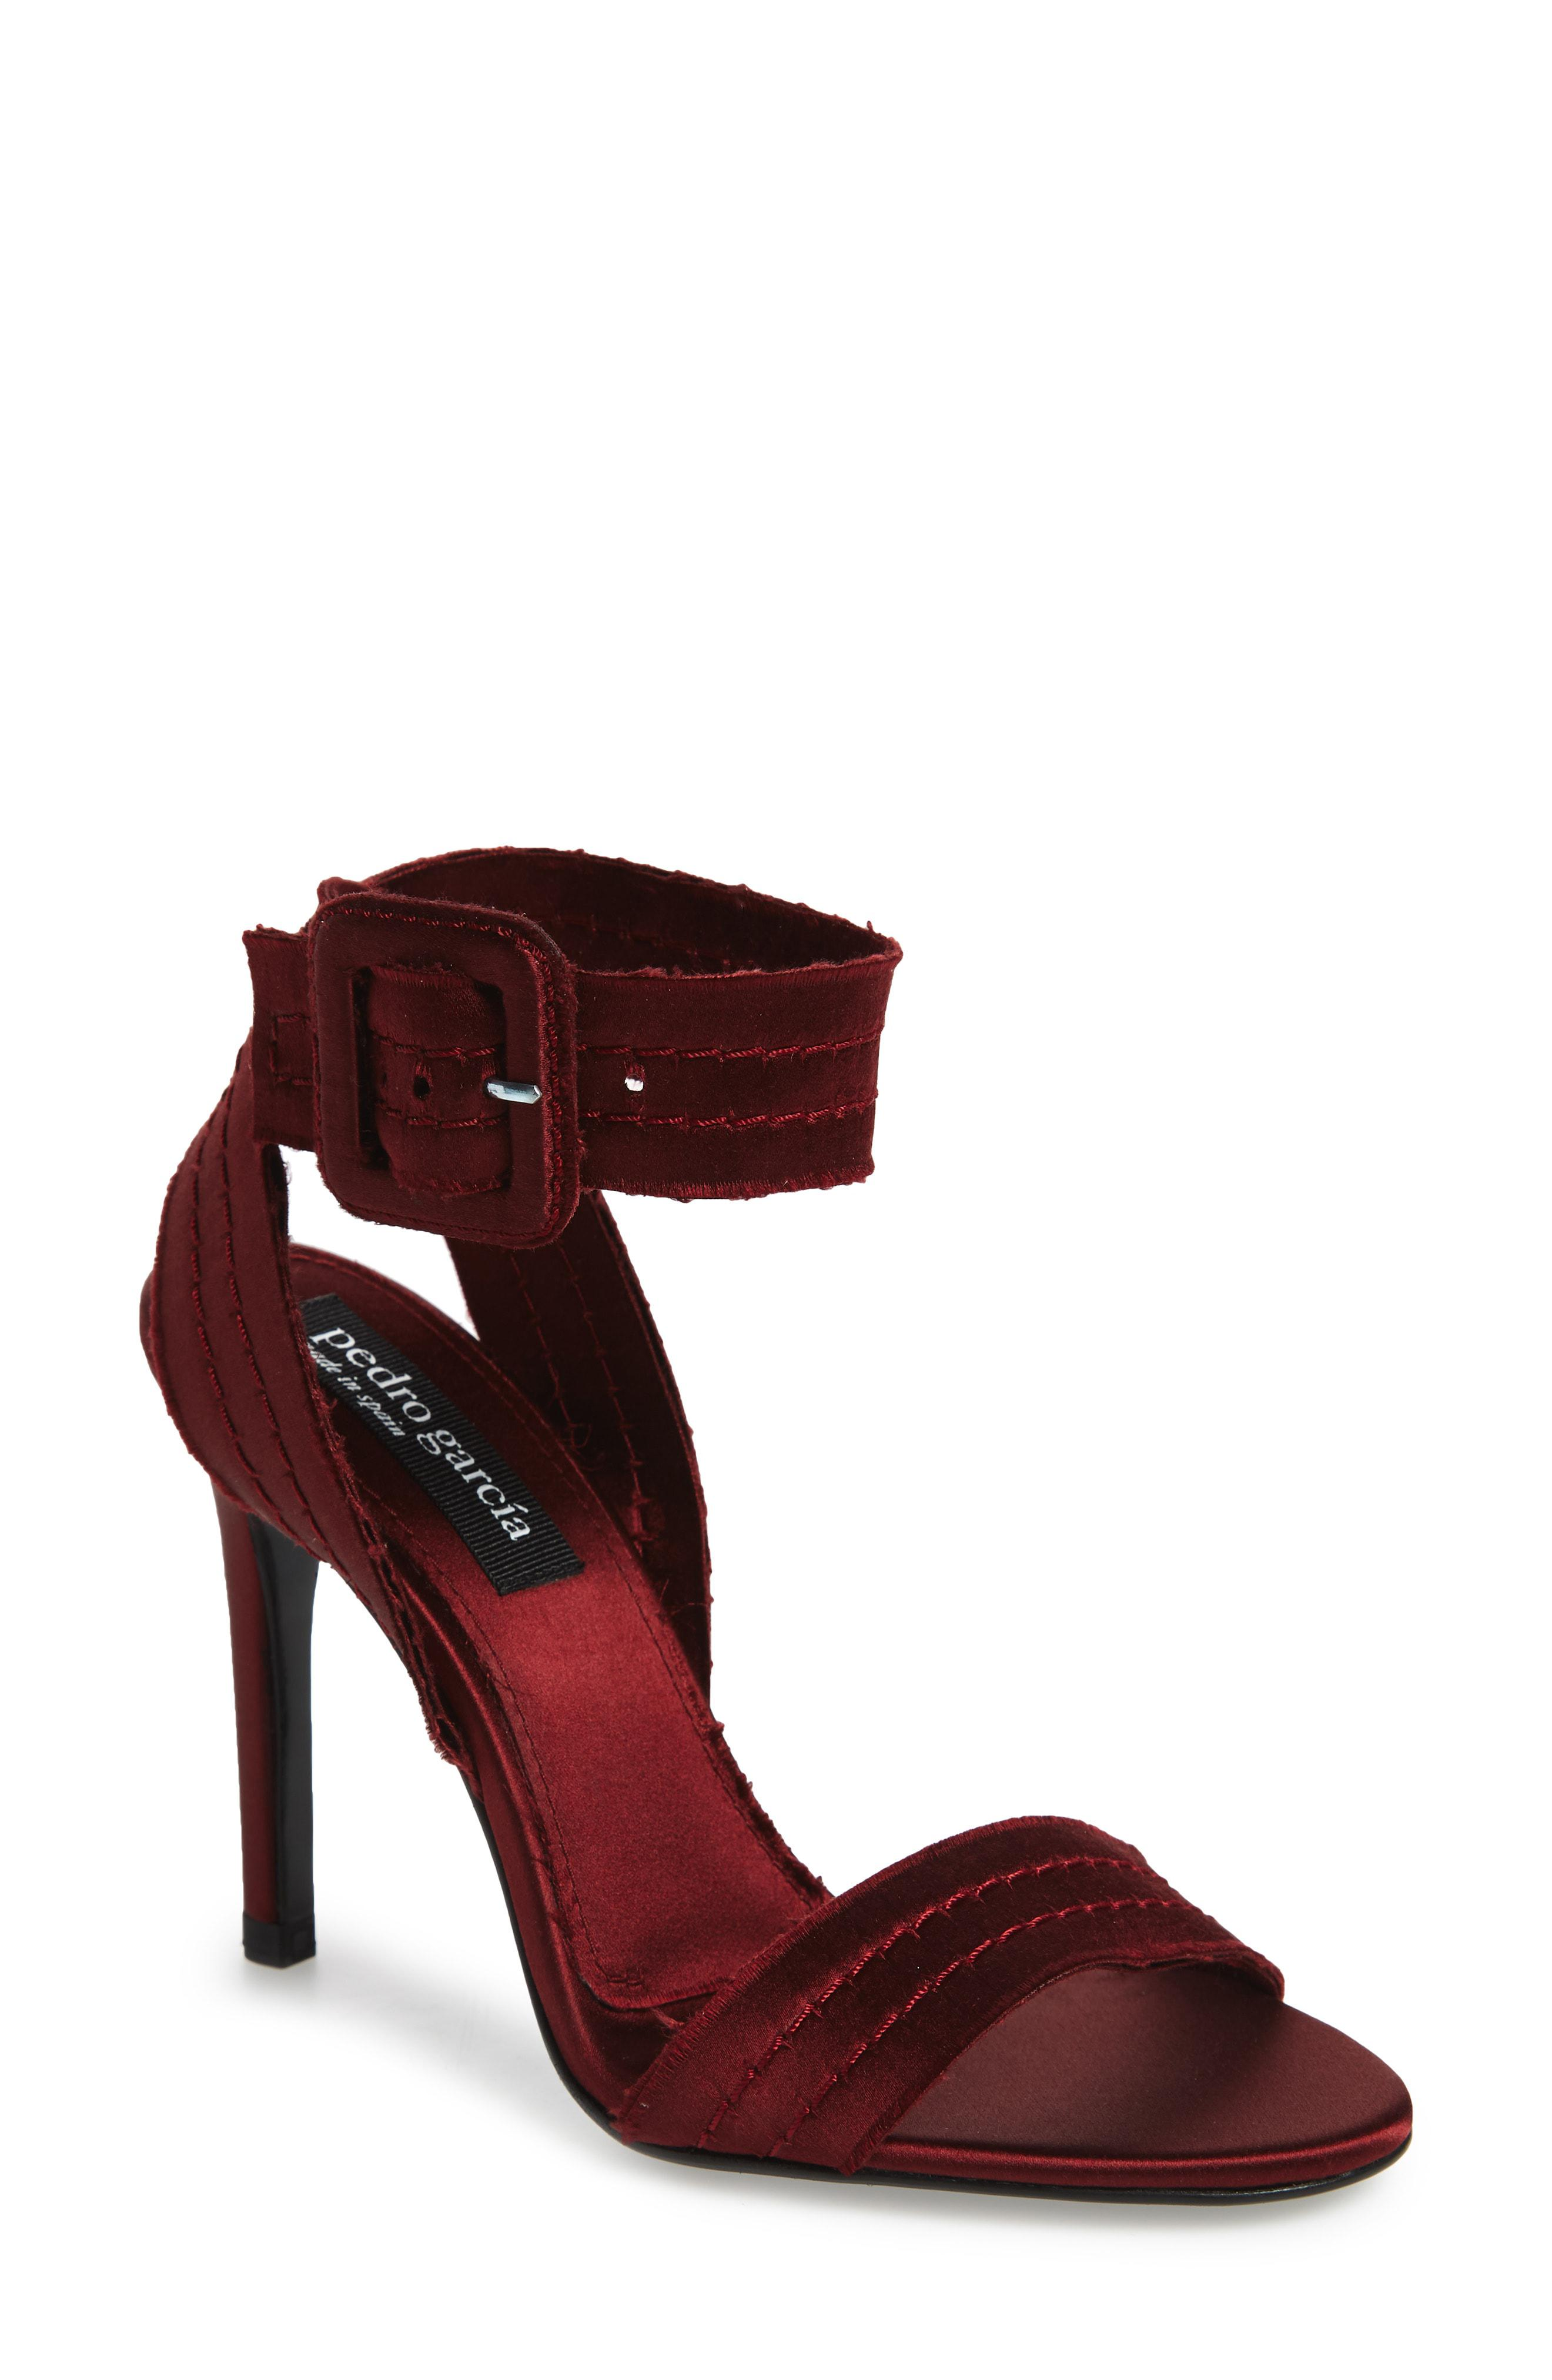 77b64a997 Lyst - Pedro Garcia Catalina Sandal in Red